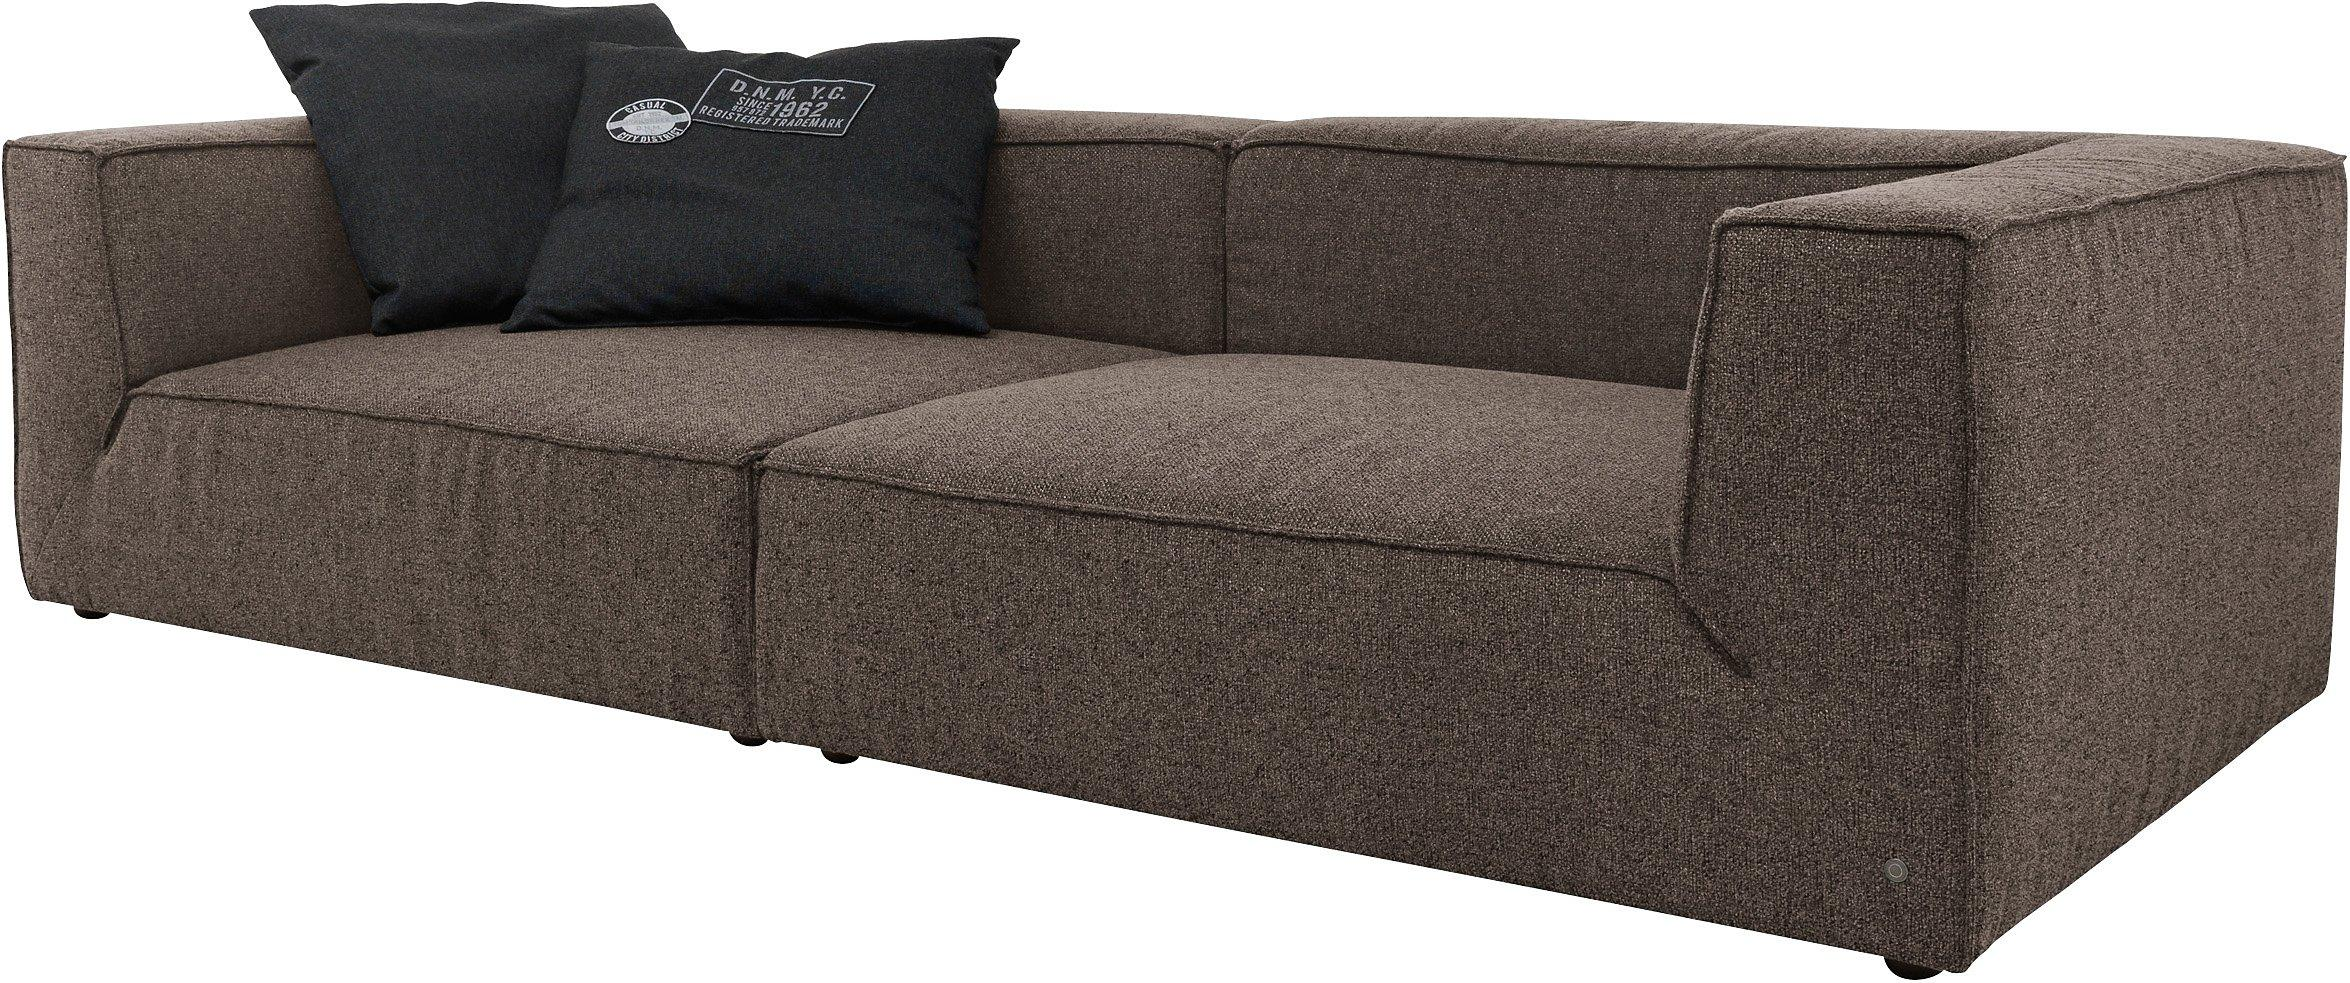 Full Size of Tom Tailor Sofa Nordic Chic Heaven Style Colors Casual Couch Cube West Coast Xl Garnitur Megapol Poco Big Lounge Garten Home Affaire Mondo Verkaufen 2 Sitzer Sofa Tom Tailor Sofa